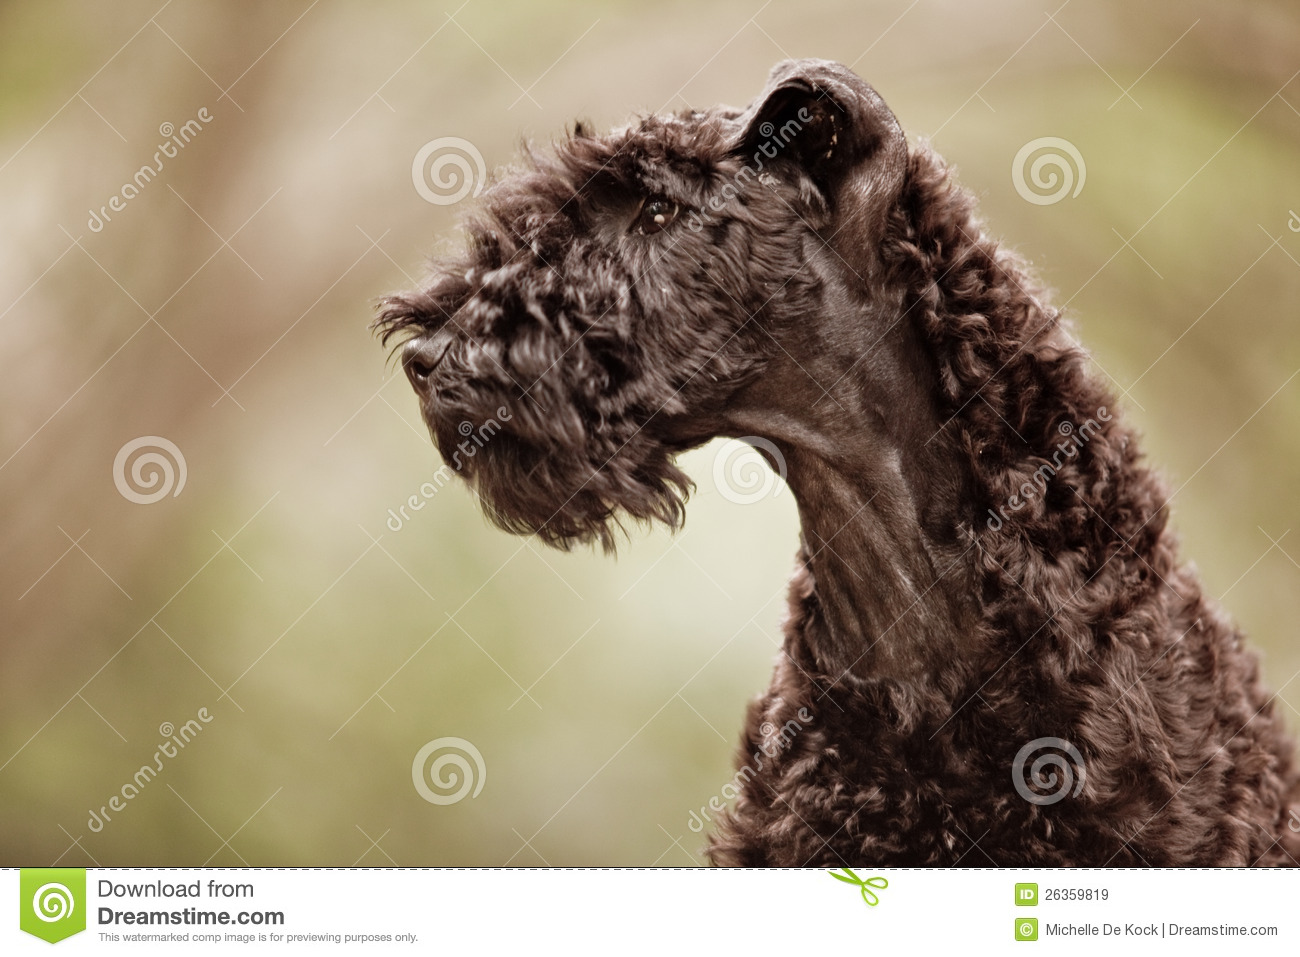 Kerry Blue Terrier Puppy Profile Stock Image - Image of coat, female